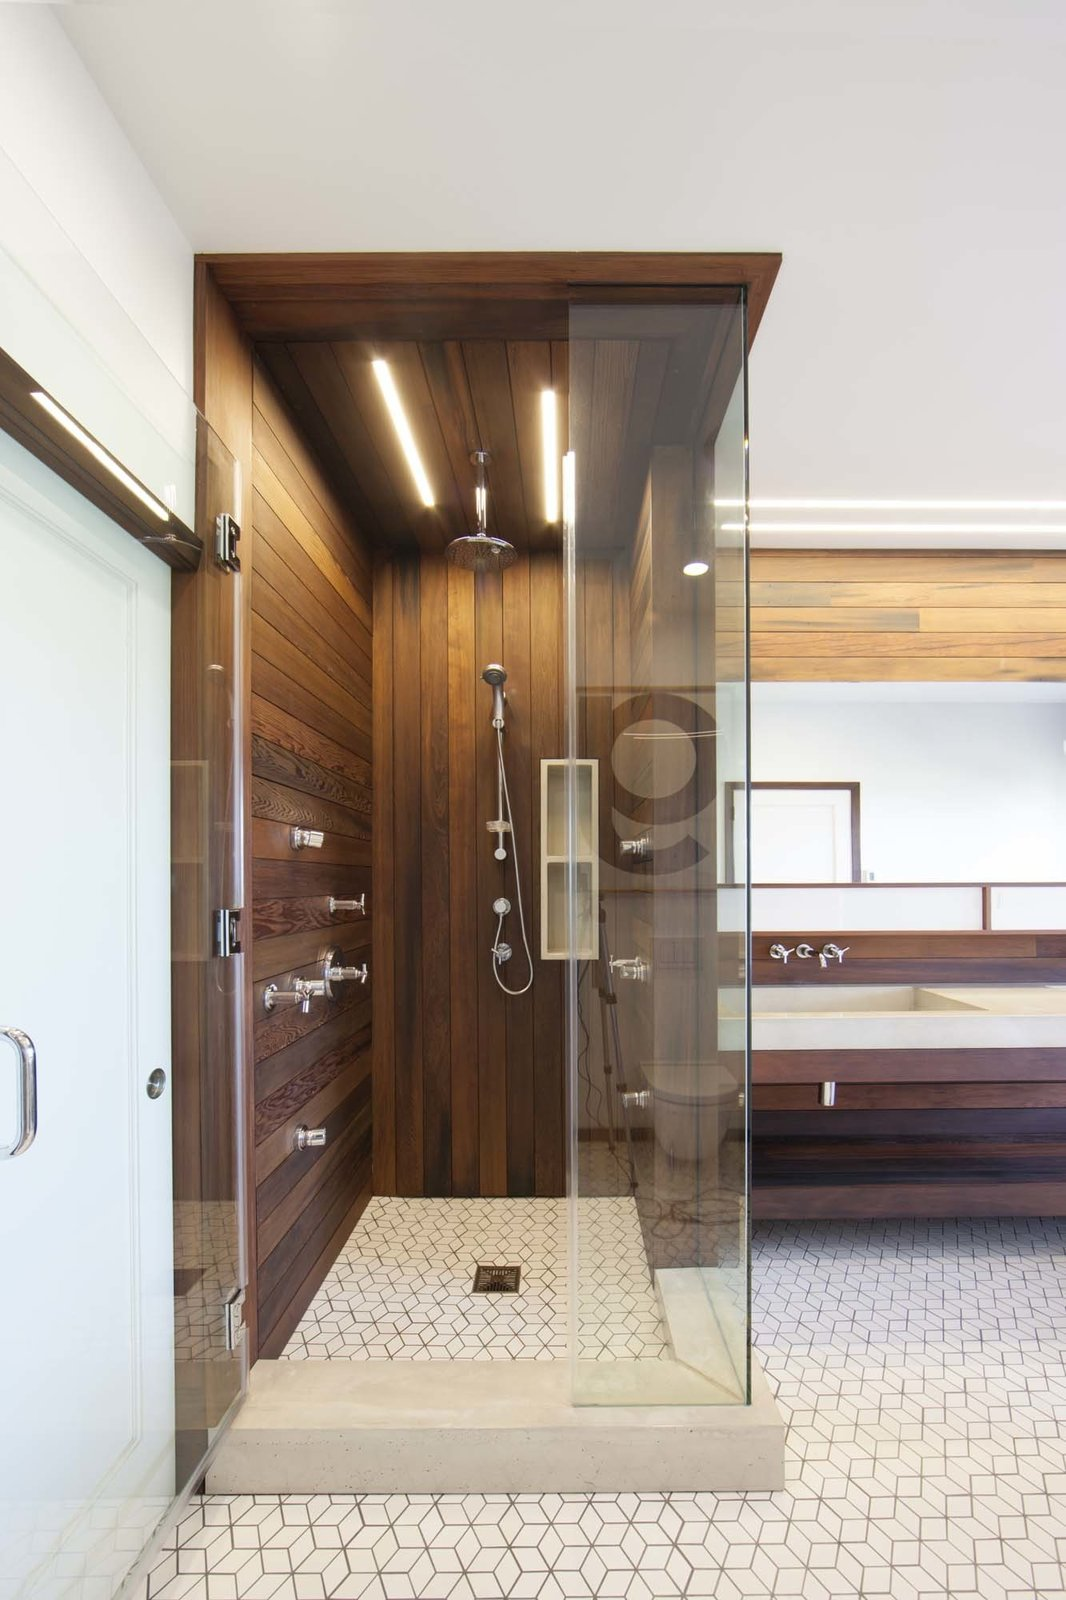 Photo 10 of 10 in 10 Best Modern Showers to Inspire Your Bathroom ...